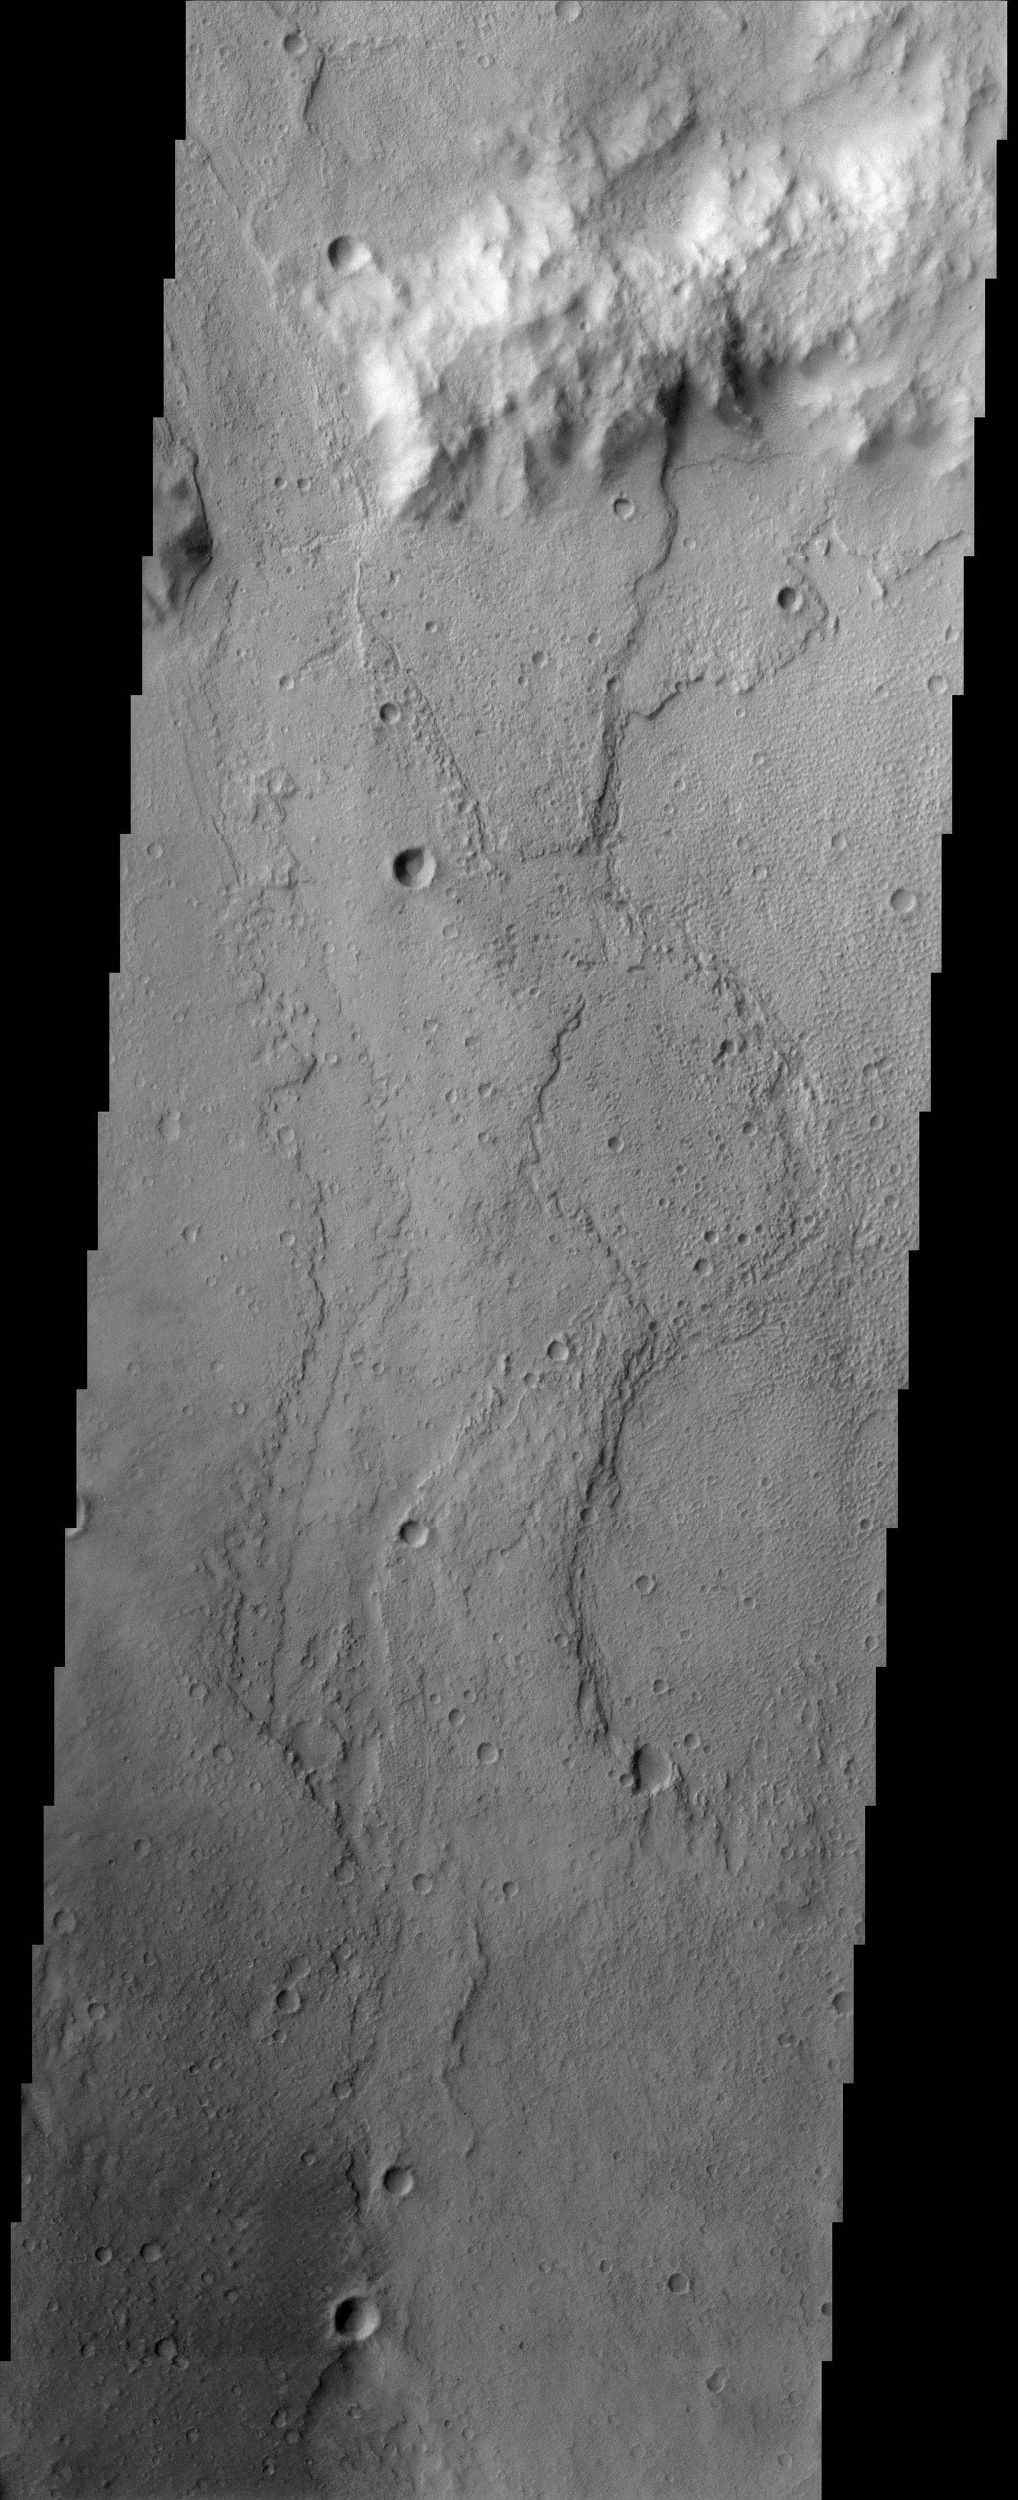 Palos Crater, seen in this NASA Mars Odyssey image, has been suggested as a future landing site for Mars missions because it may contain lake deposits. This crater has a channel called Tinto Vallis, which enters from the south.